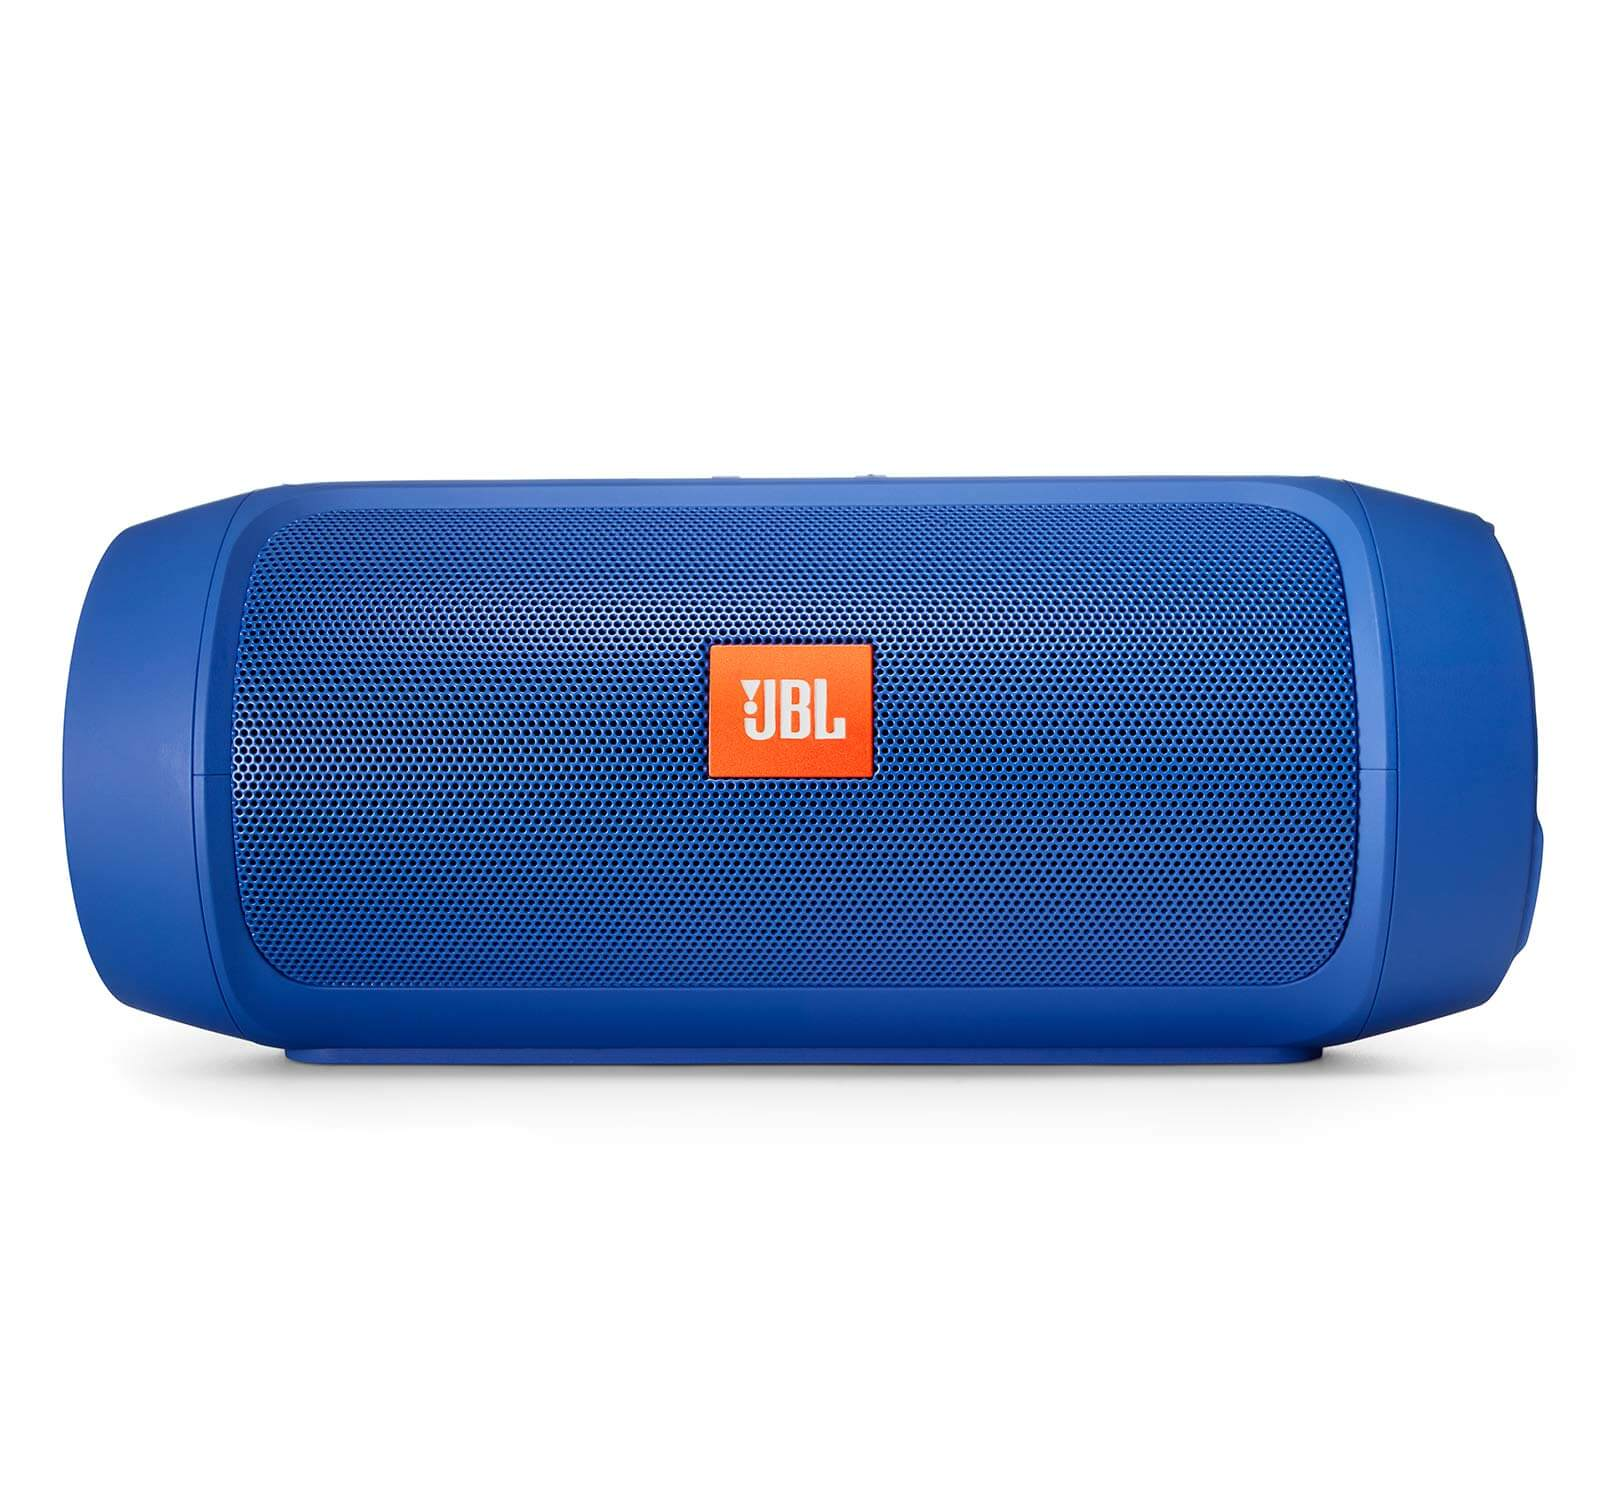 jbl-bluetooth-speakers-8